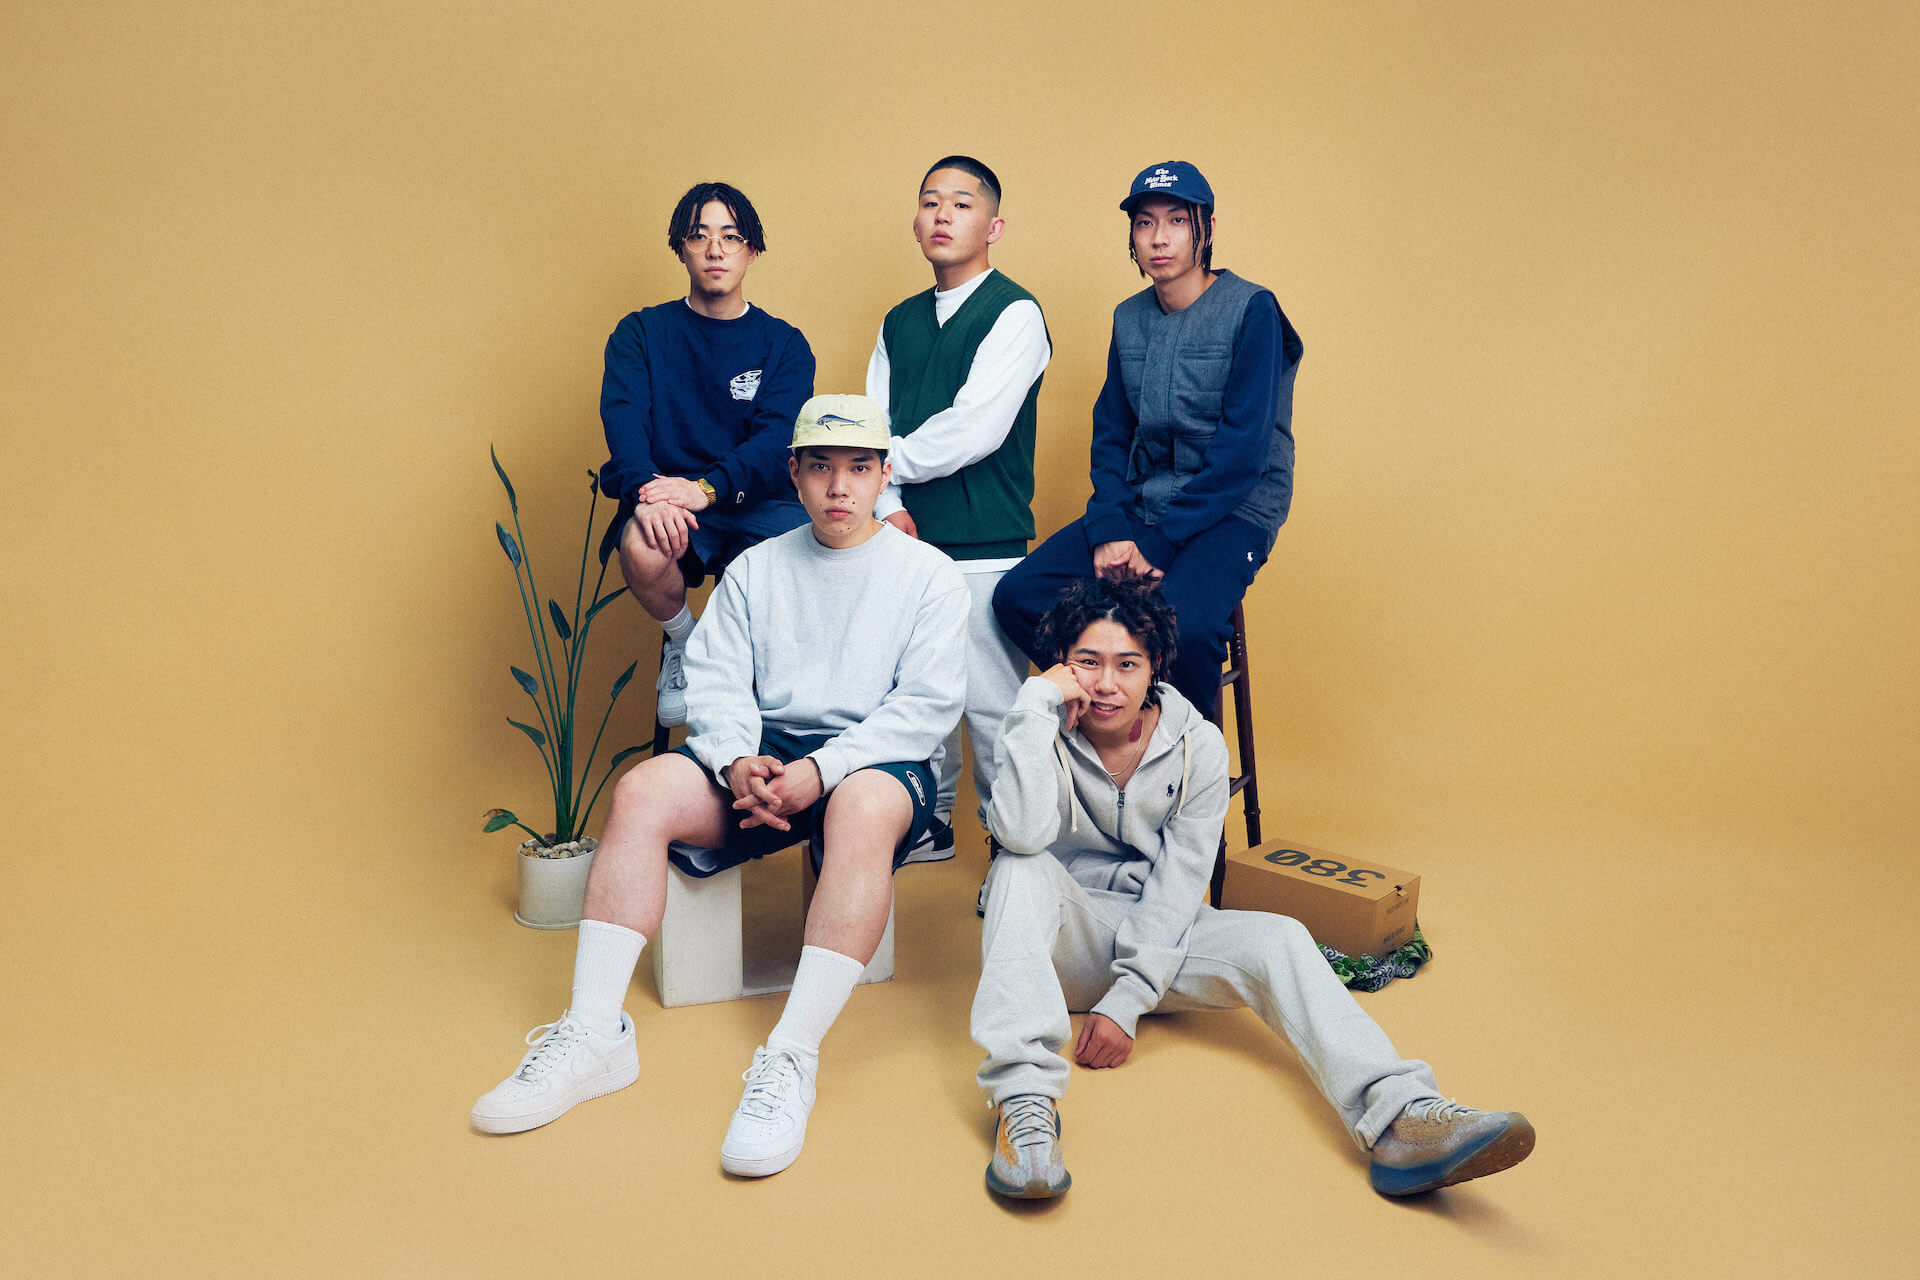 """Sounds' Deliの1stアルバムより新曲""""DAWG LIFE FREE STYLE""""がリリース決定!MESSが手がけたMVも公開 music210615_soundsdeli_2"""